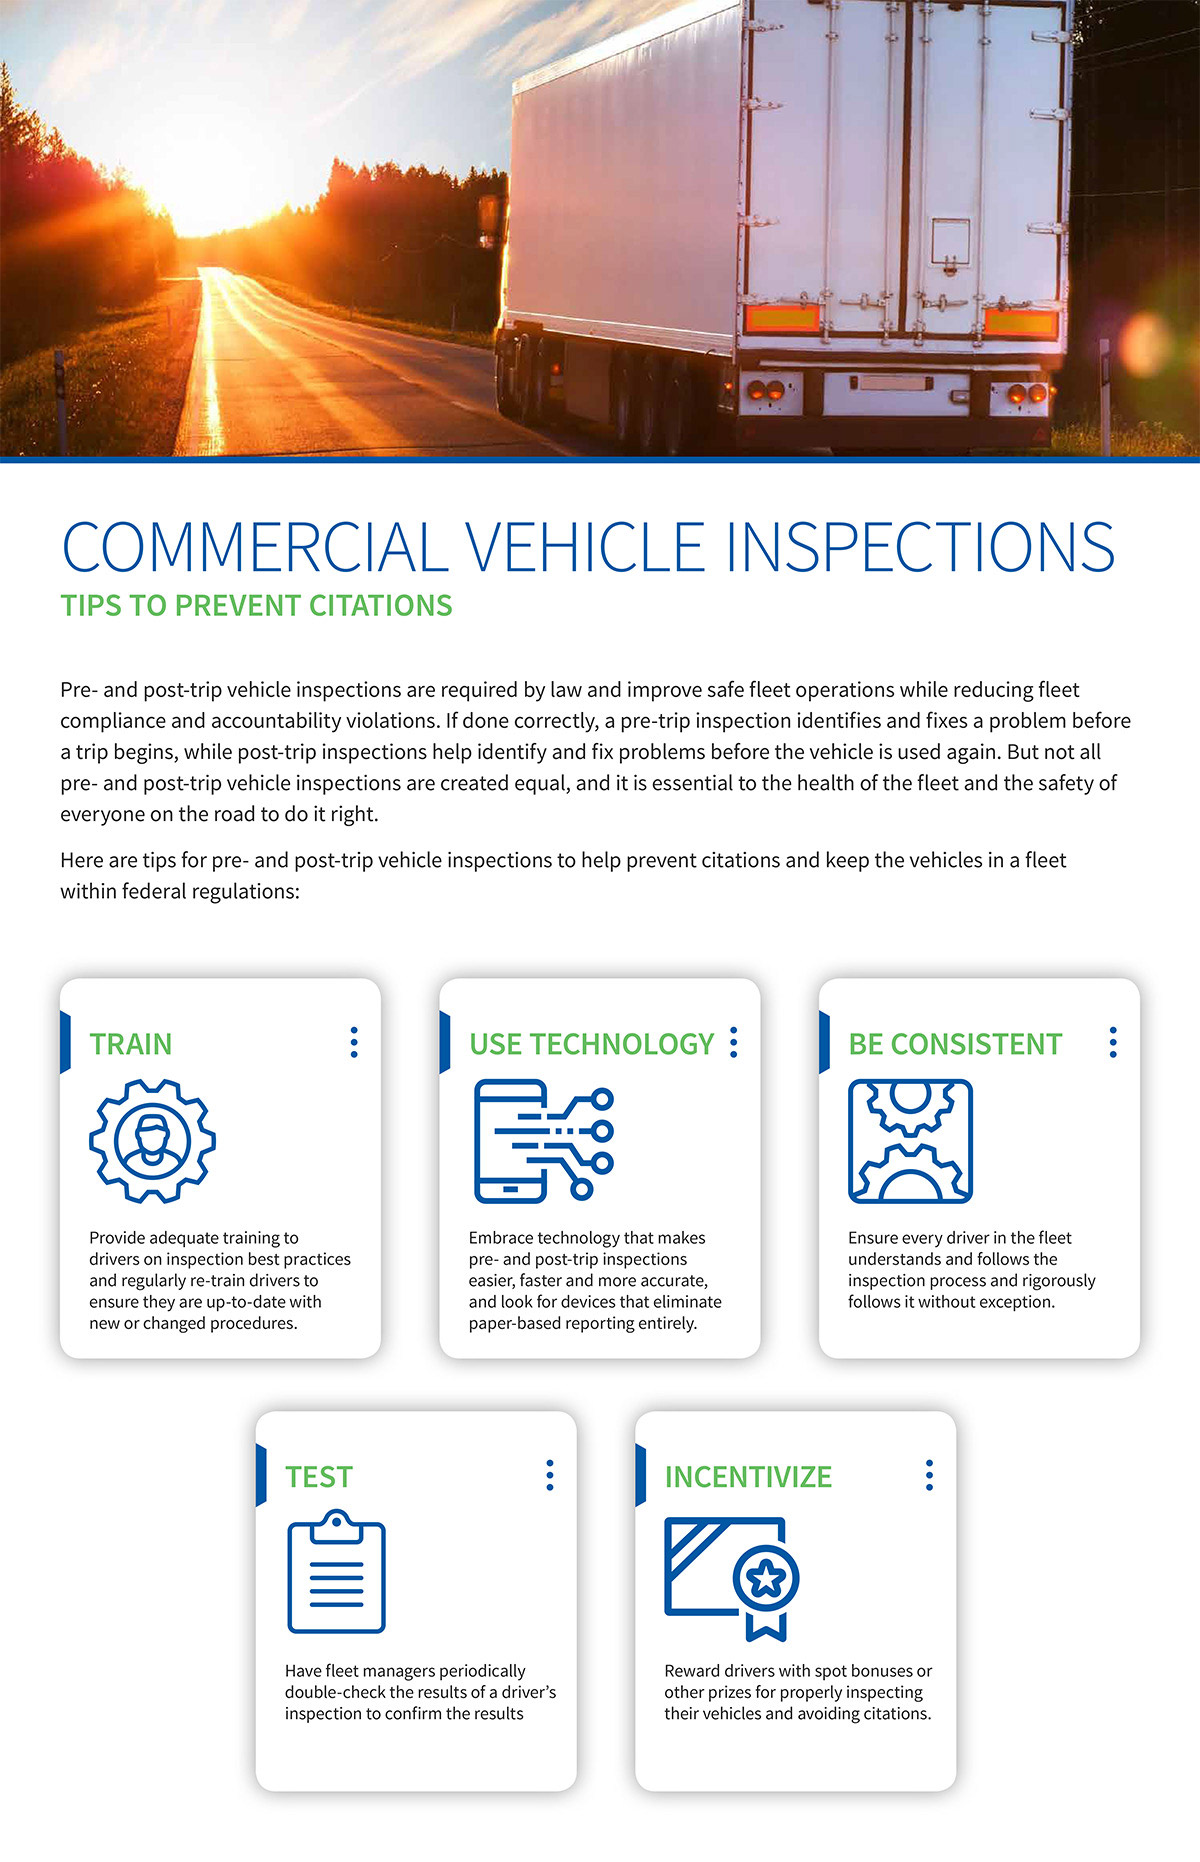 Commercial Vehicle Inspection Tips Infographic